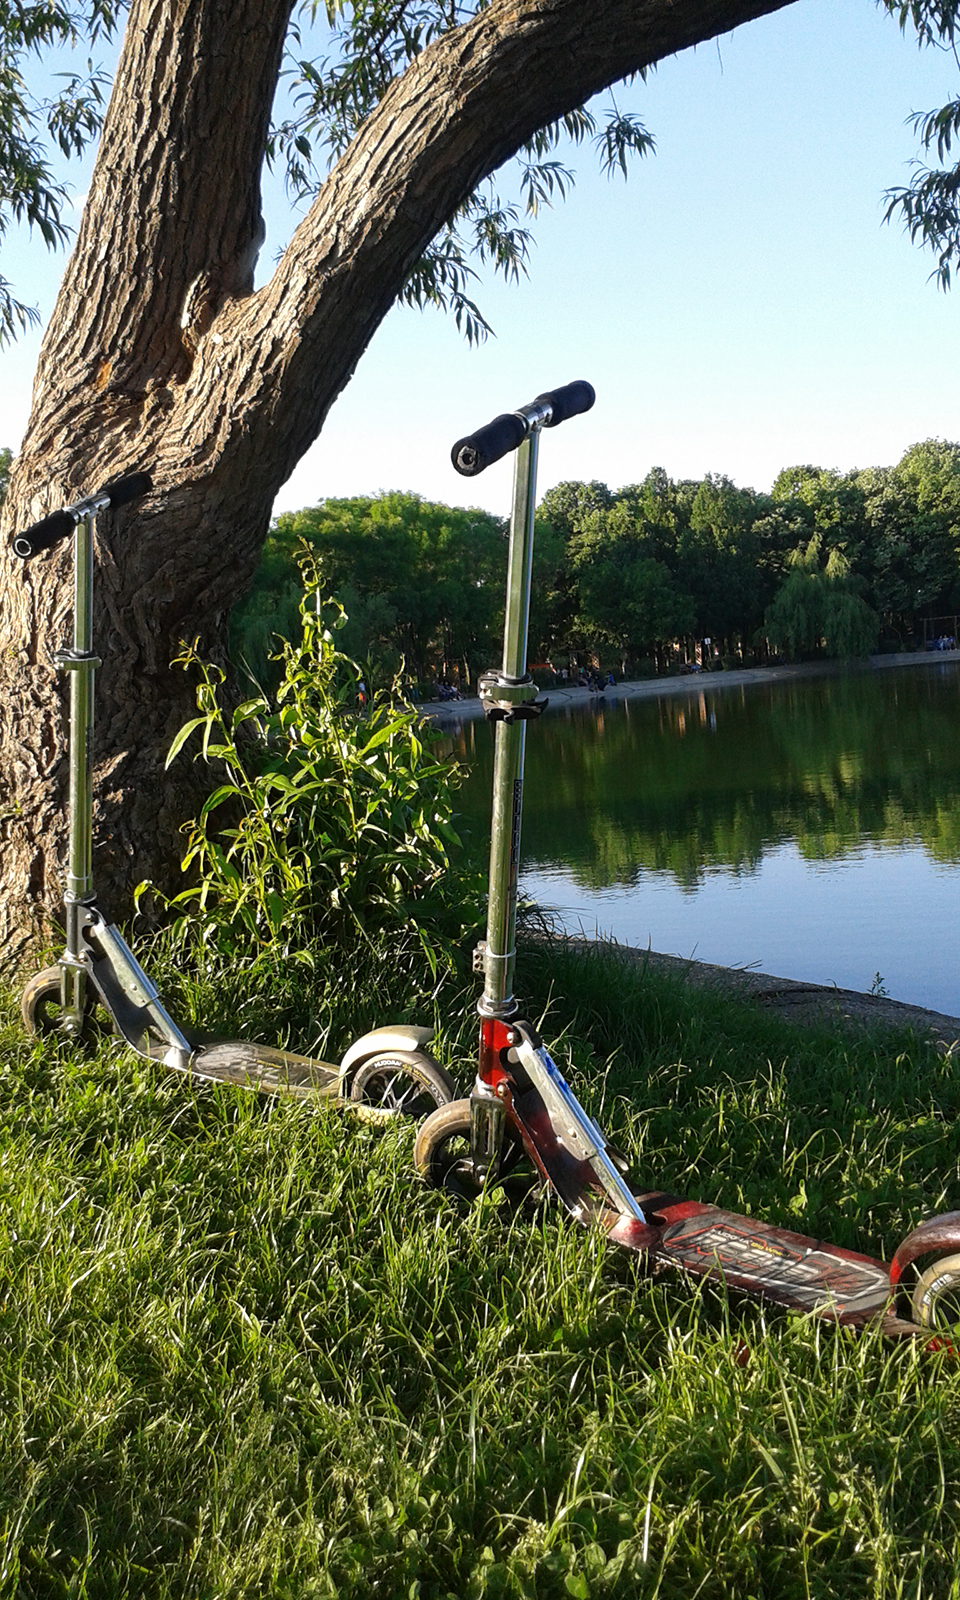 Scooter in park